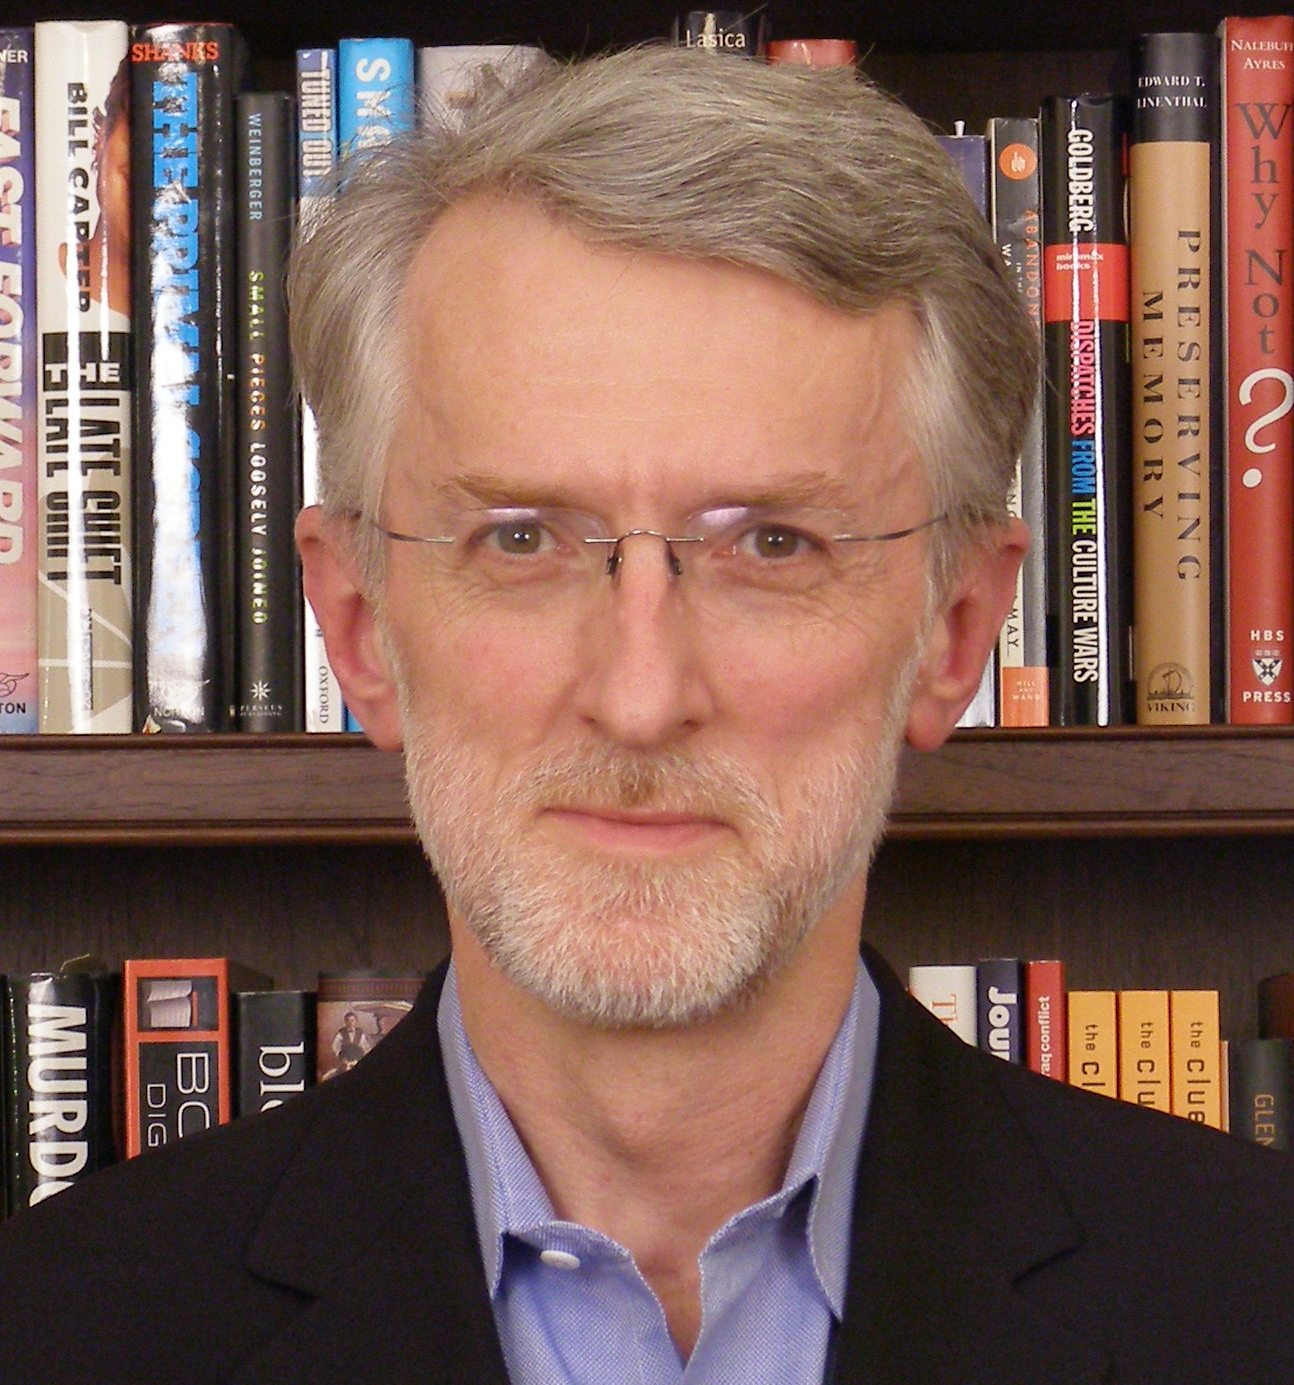 Interview: Jeff Jarvis Talks Digital Journalism & Privacy